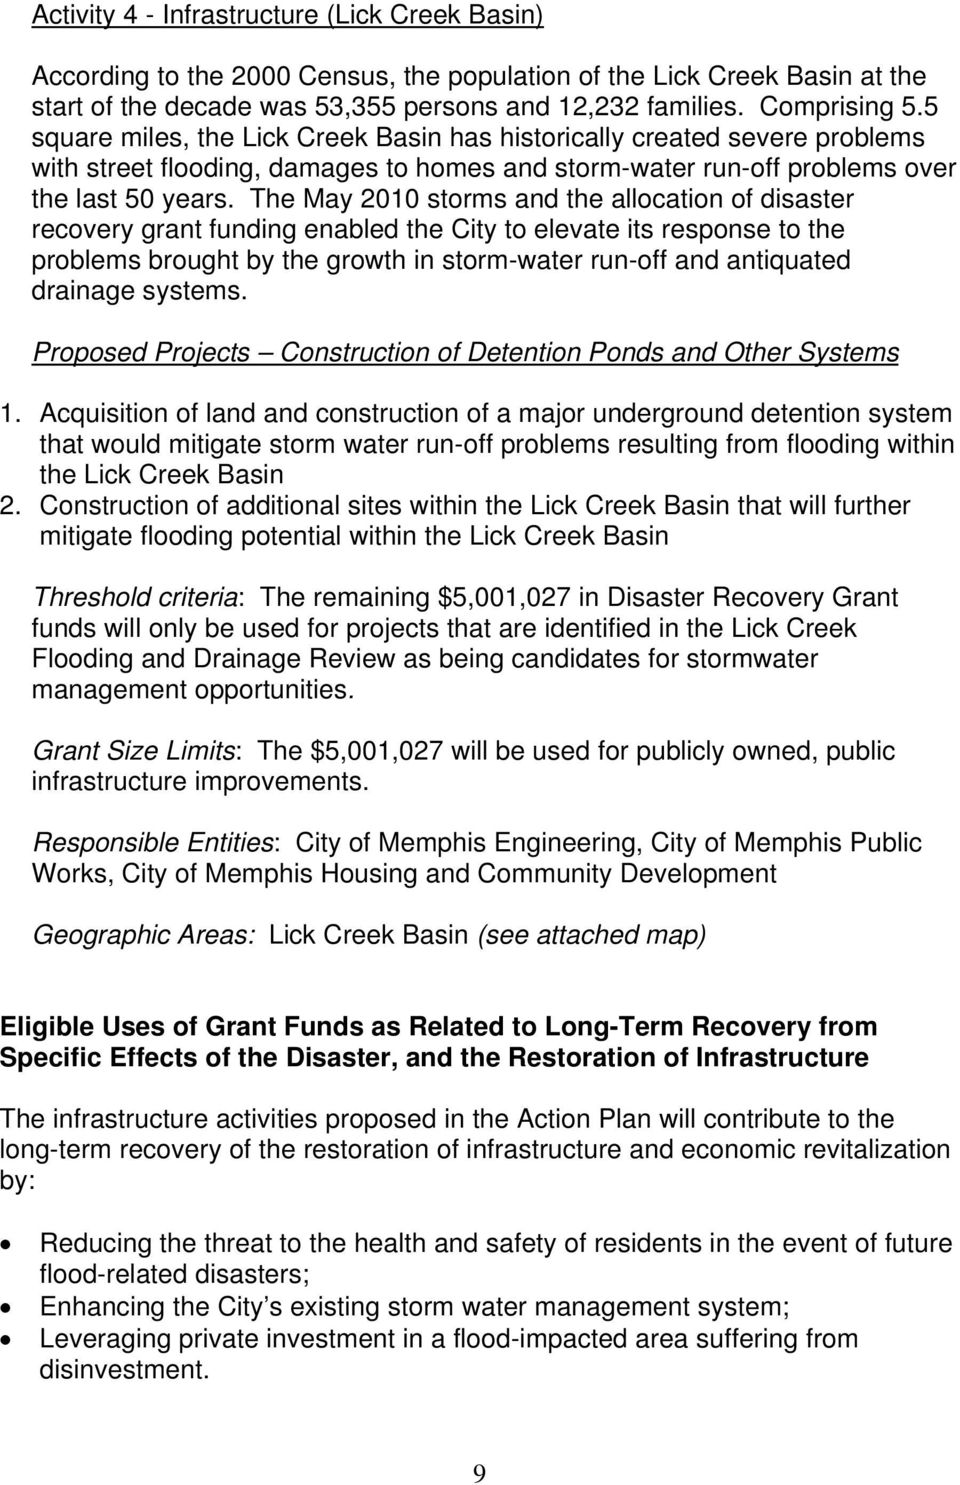 The May 2010 storms and the allocation of disaster recovery grant funding enabled the City to elevate its response to the problems brought by the growth in storm-water run-off and antiquated drainage